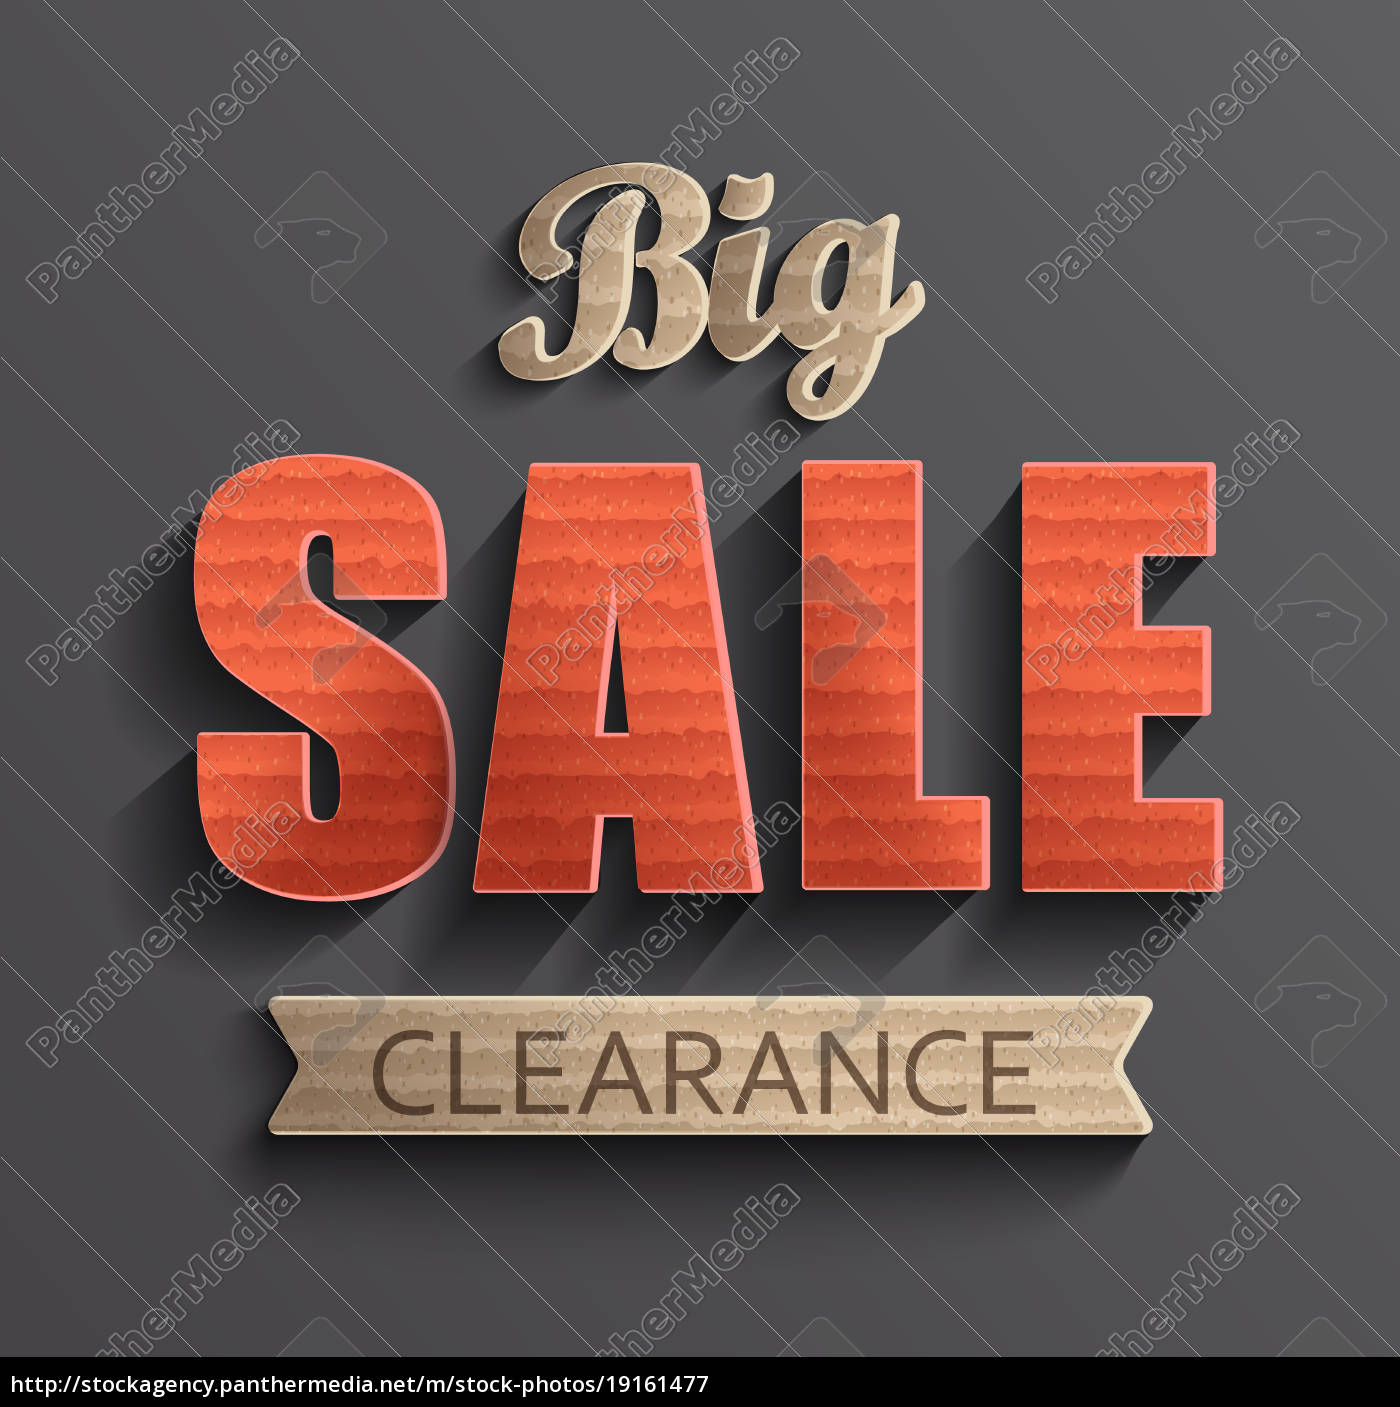 poster, big, sale, clearance. - 19161477